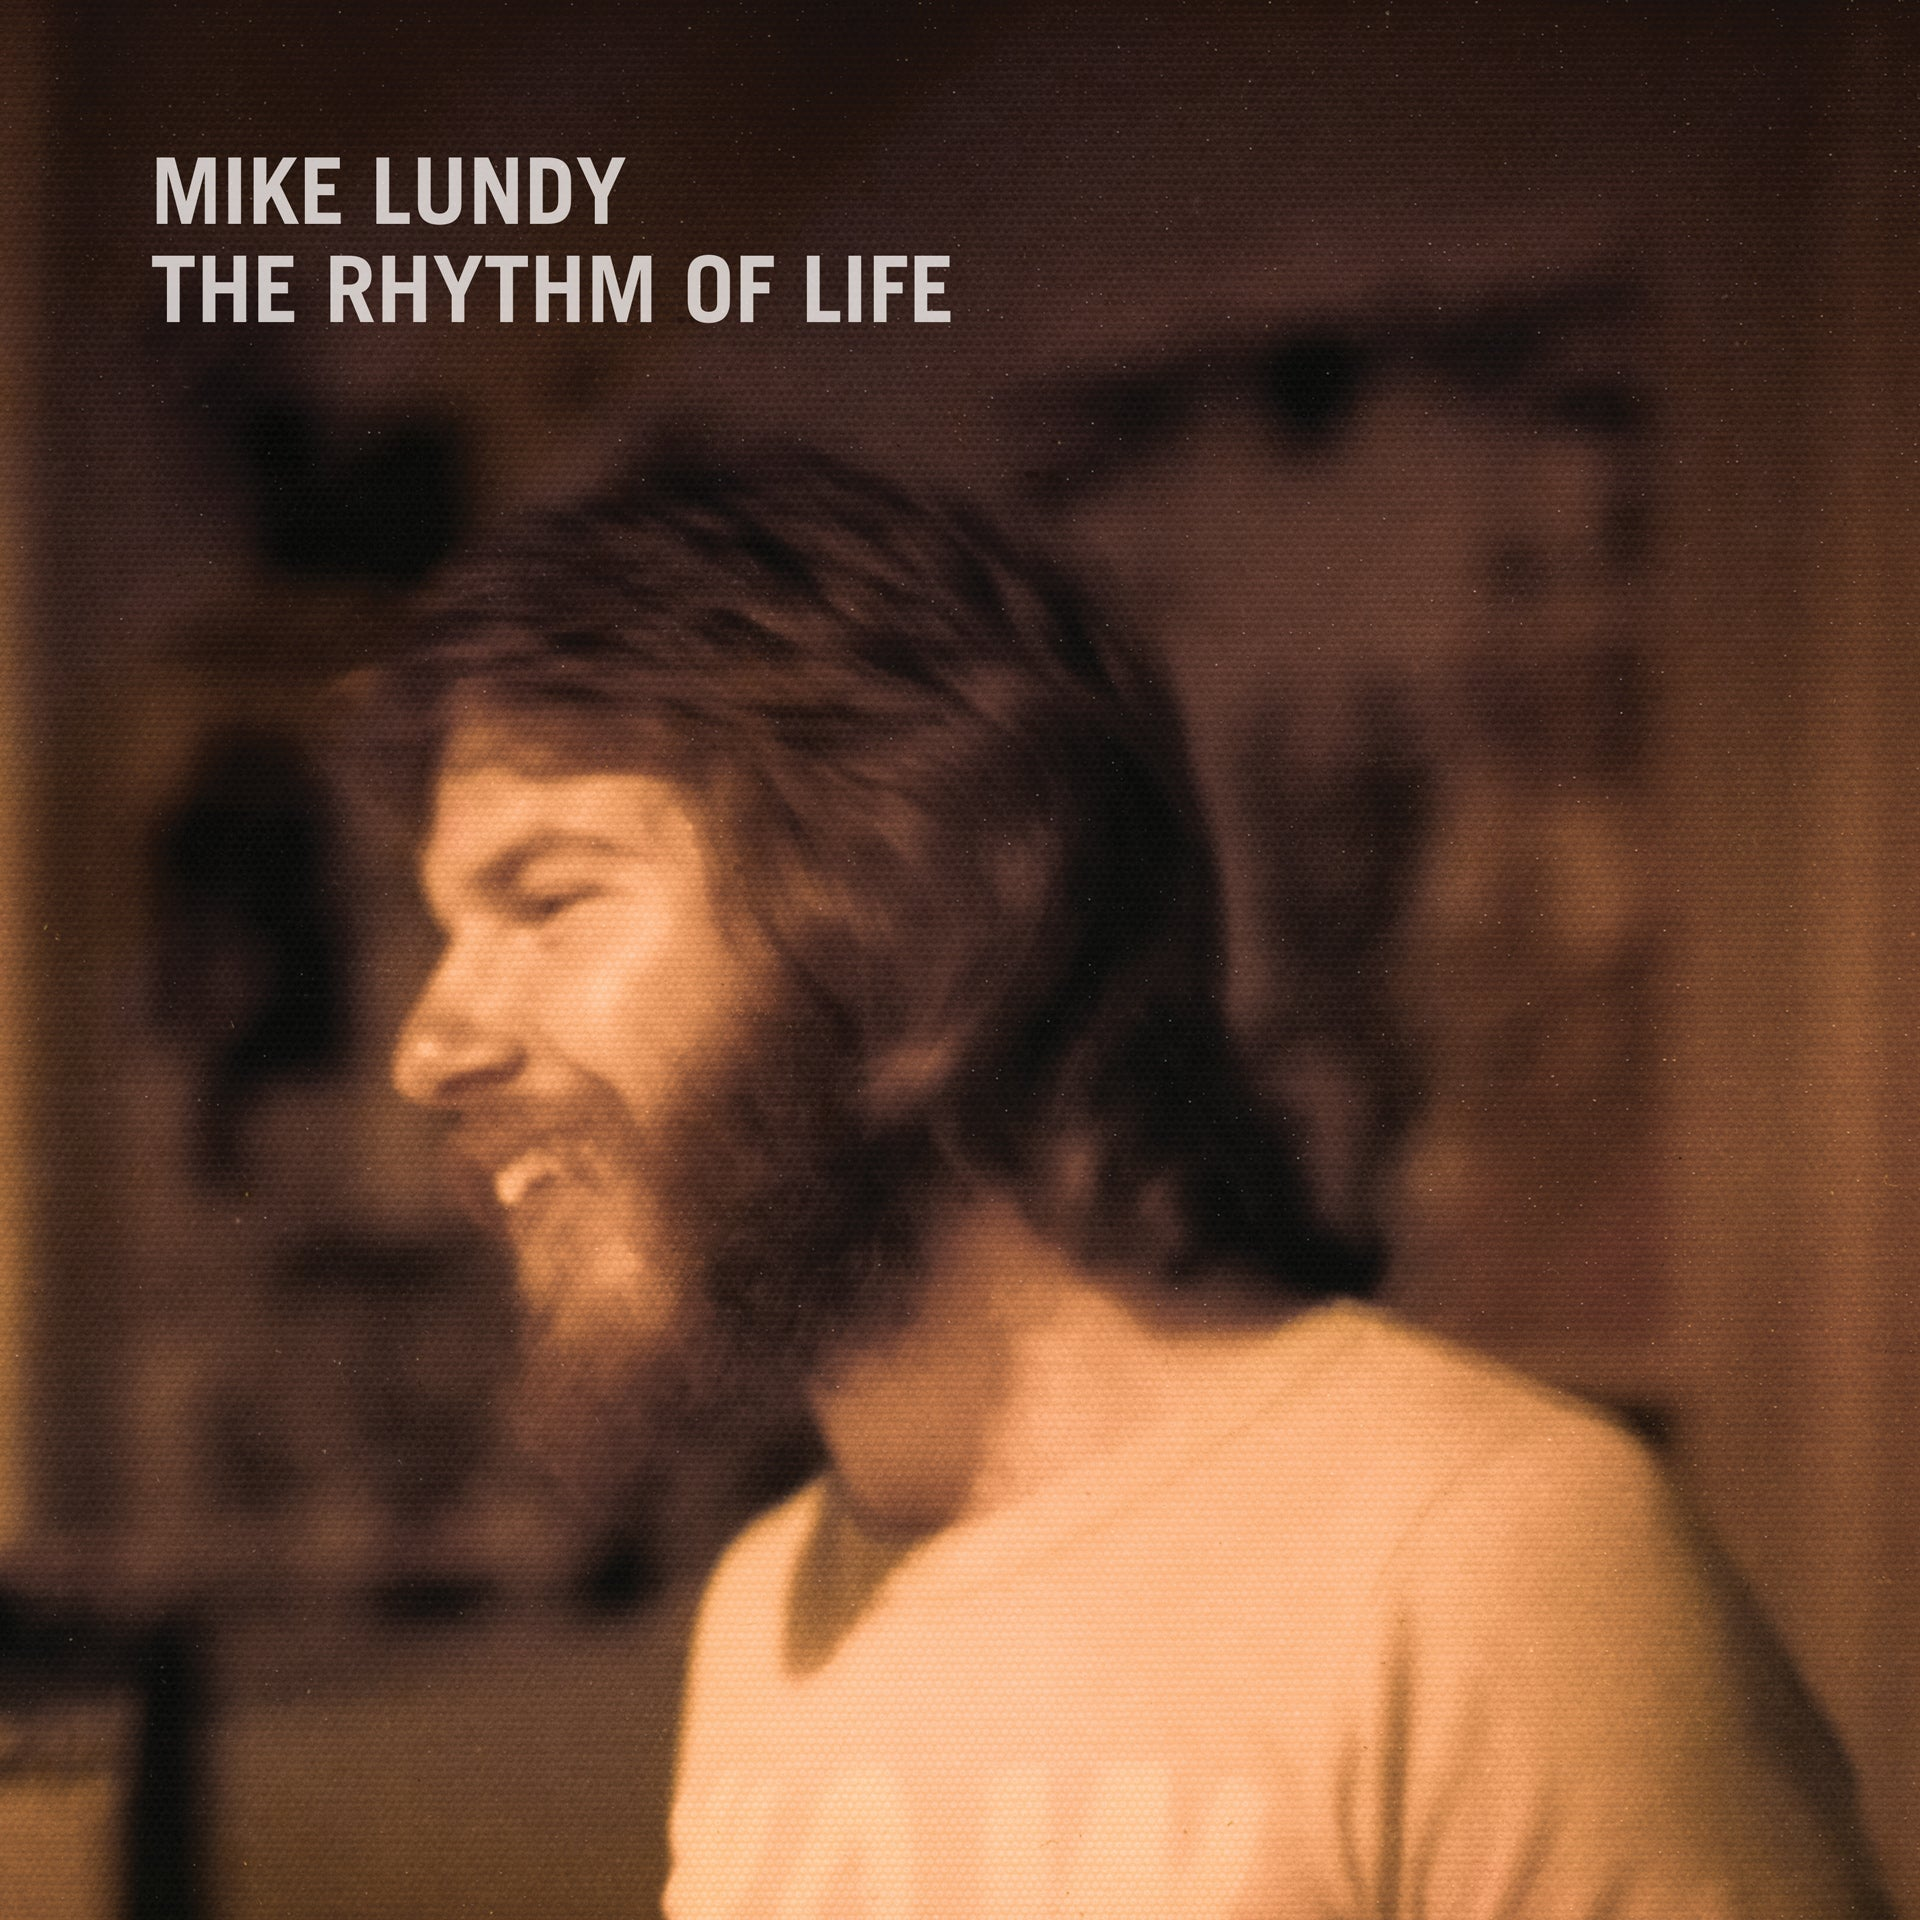 Cover artwork of AGS-LP001, Mike Lundy 'The Rhythm Of Life'.